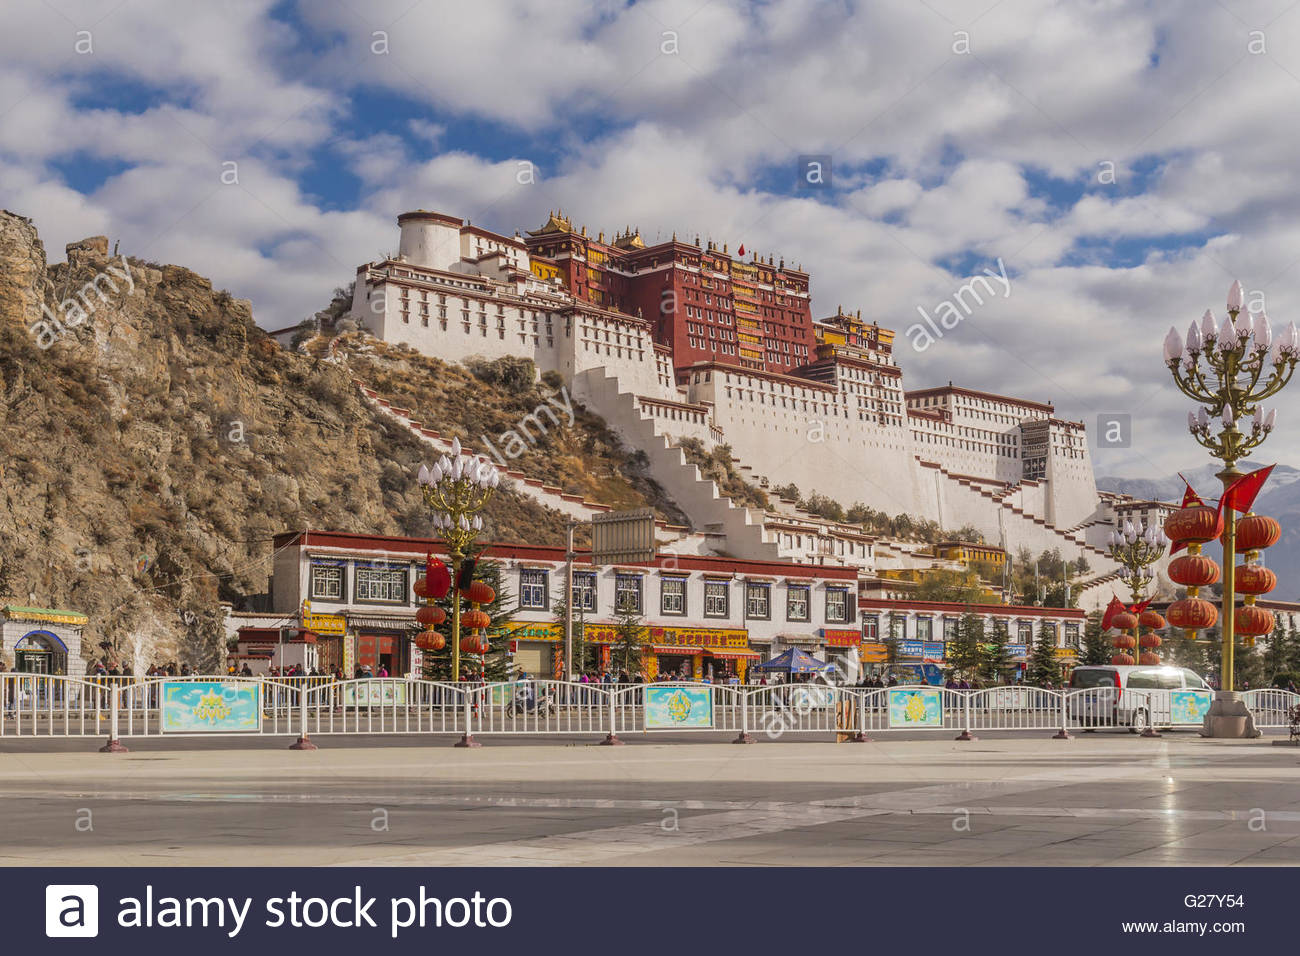 The Potala Palace in Lhasa - Stock Image